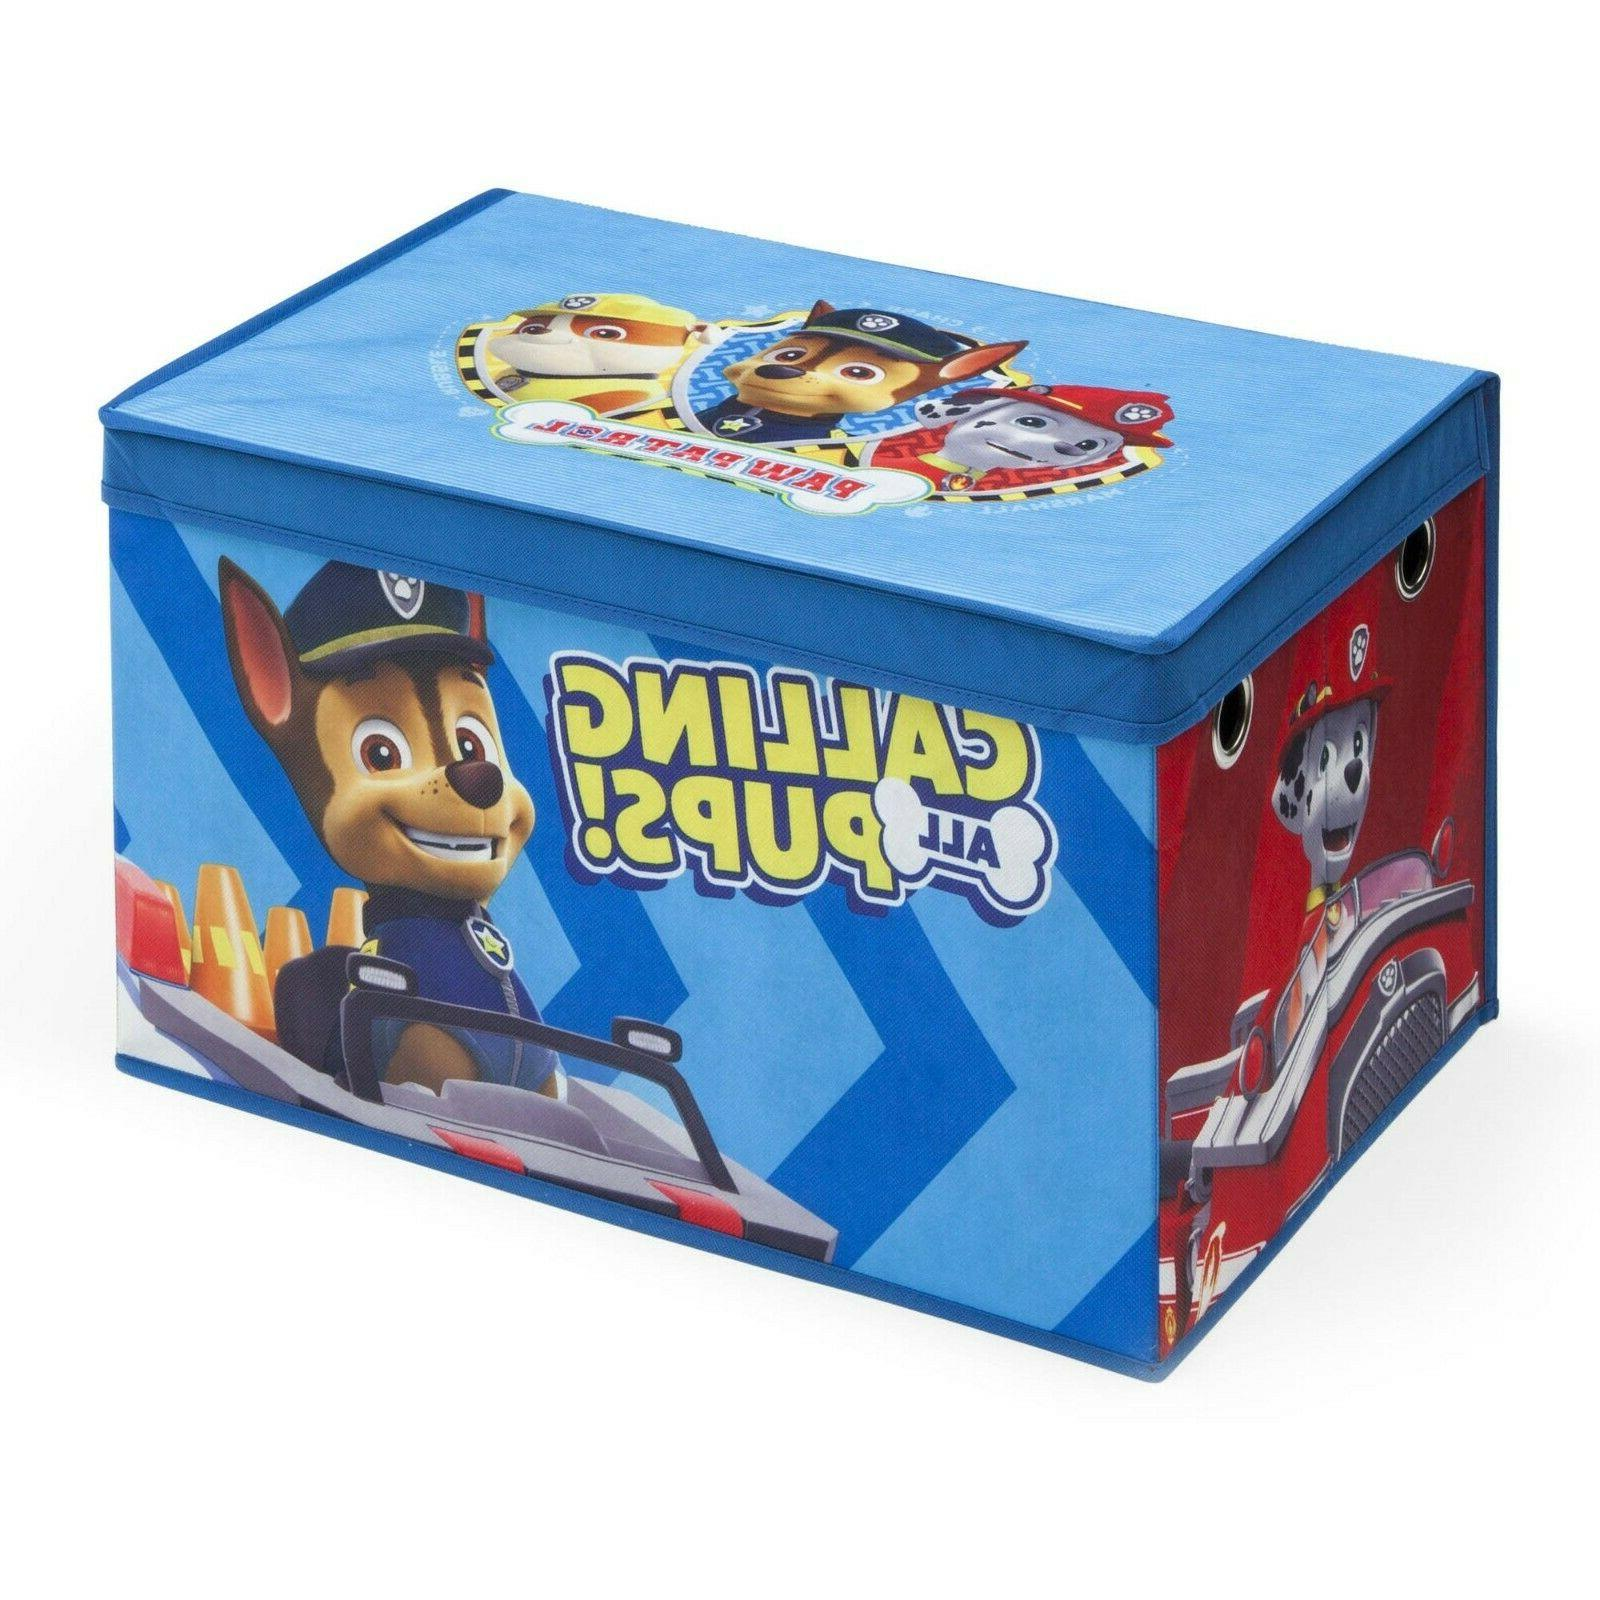 NEW Paw Patrol Fabric / Chest by Delta Children